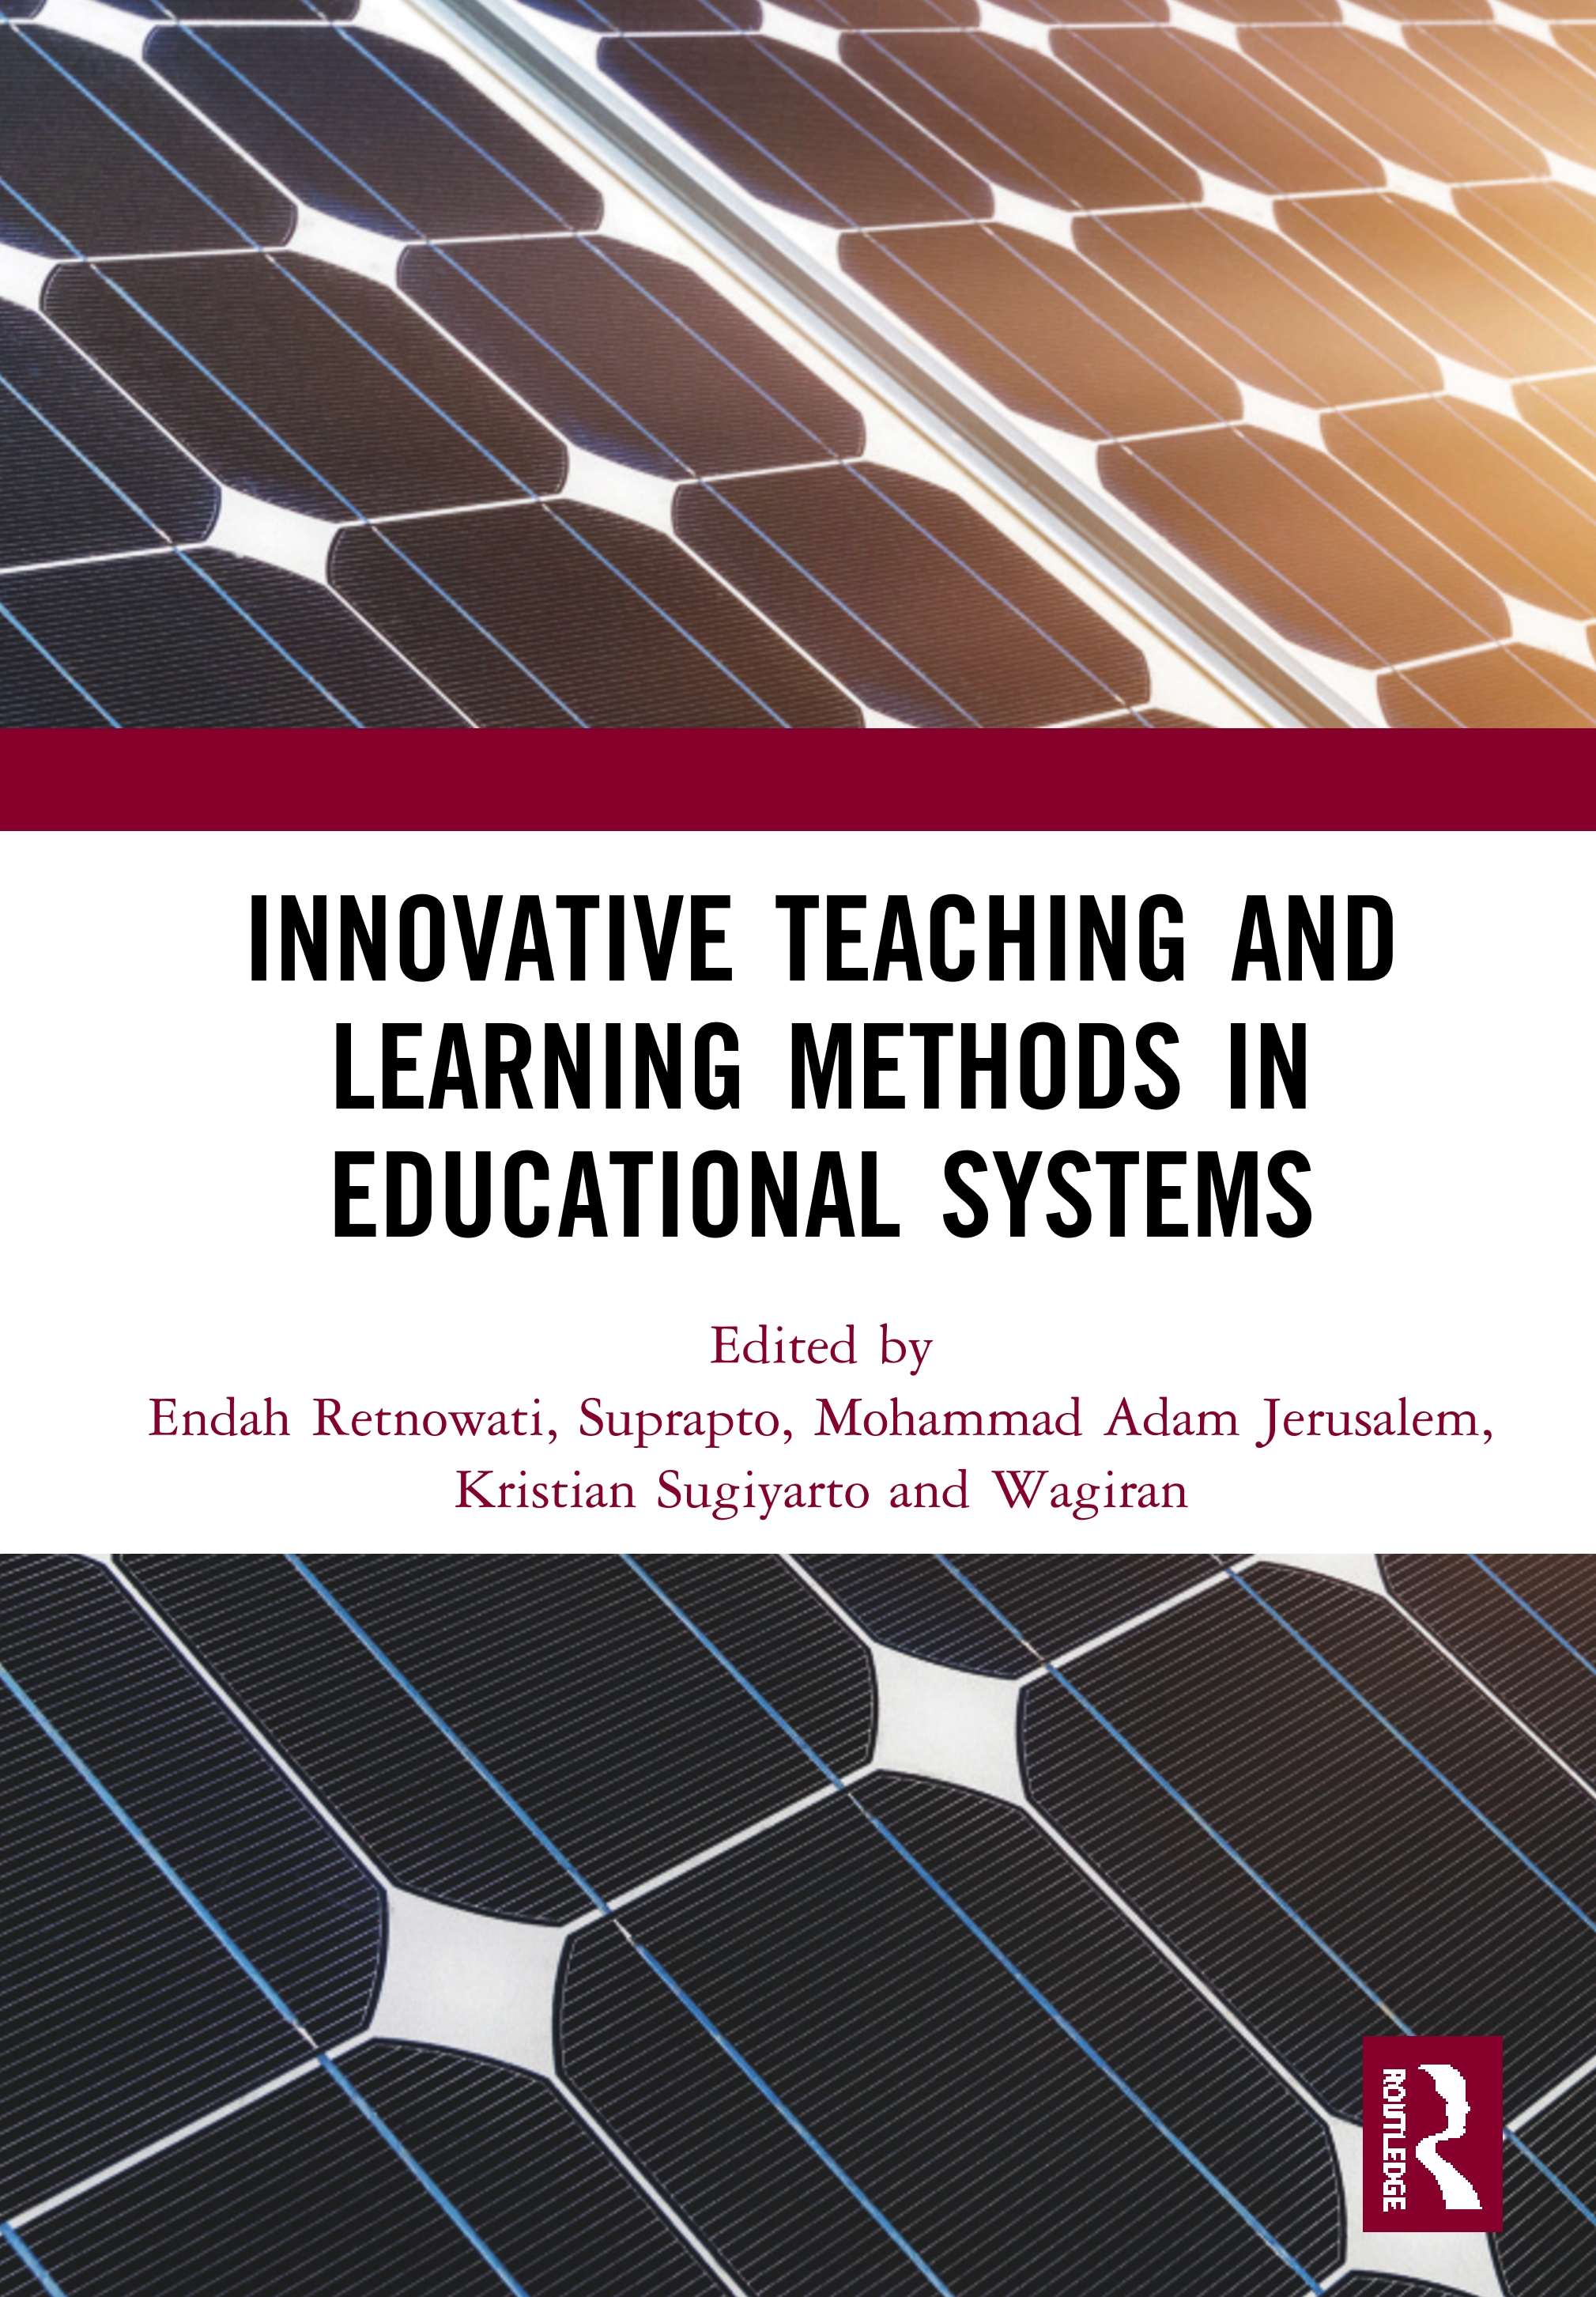 Innovative Teaching and Learning Methods in Educational Systems: Proceedings of the International Conference on Teacher Education and Professional Development (INCOTEPD 2018), October 28, 2018, Yogyakarta, Indonesia book cover